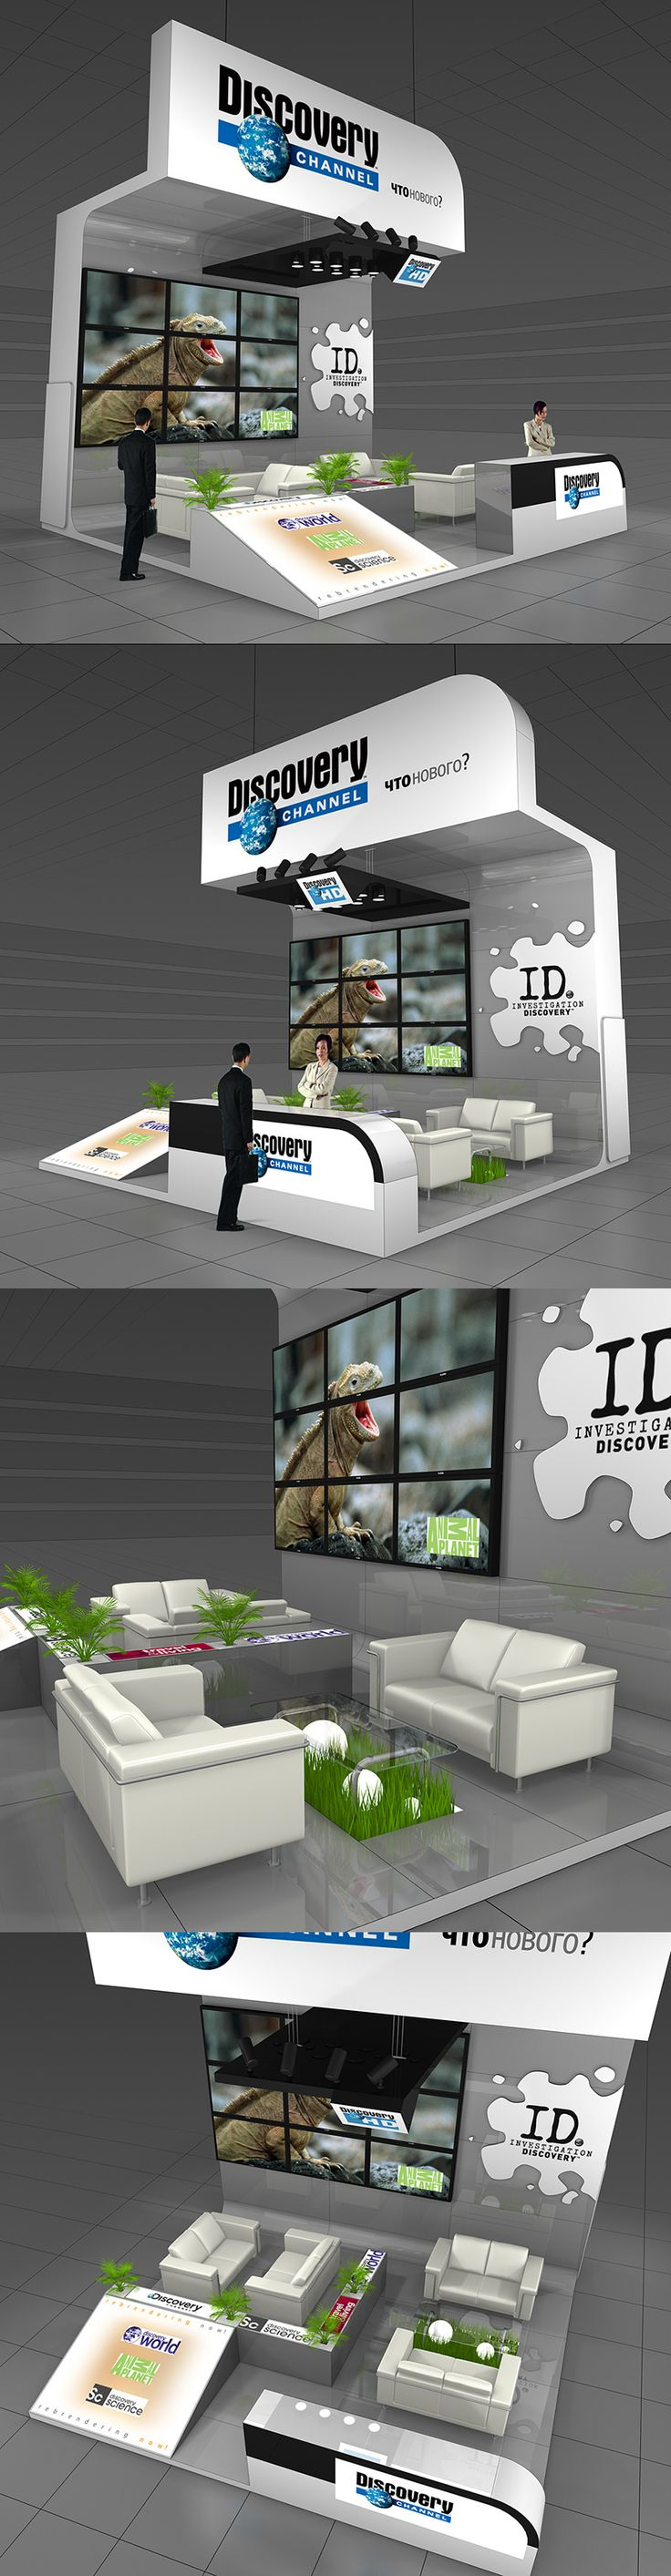 Discovery exhibition stand [2006] on Behance